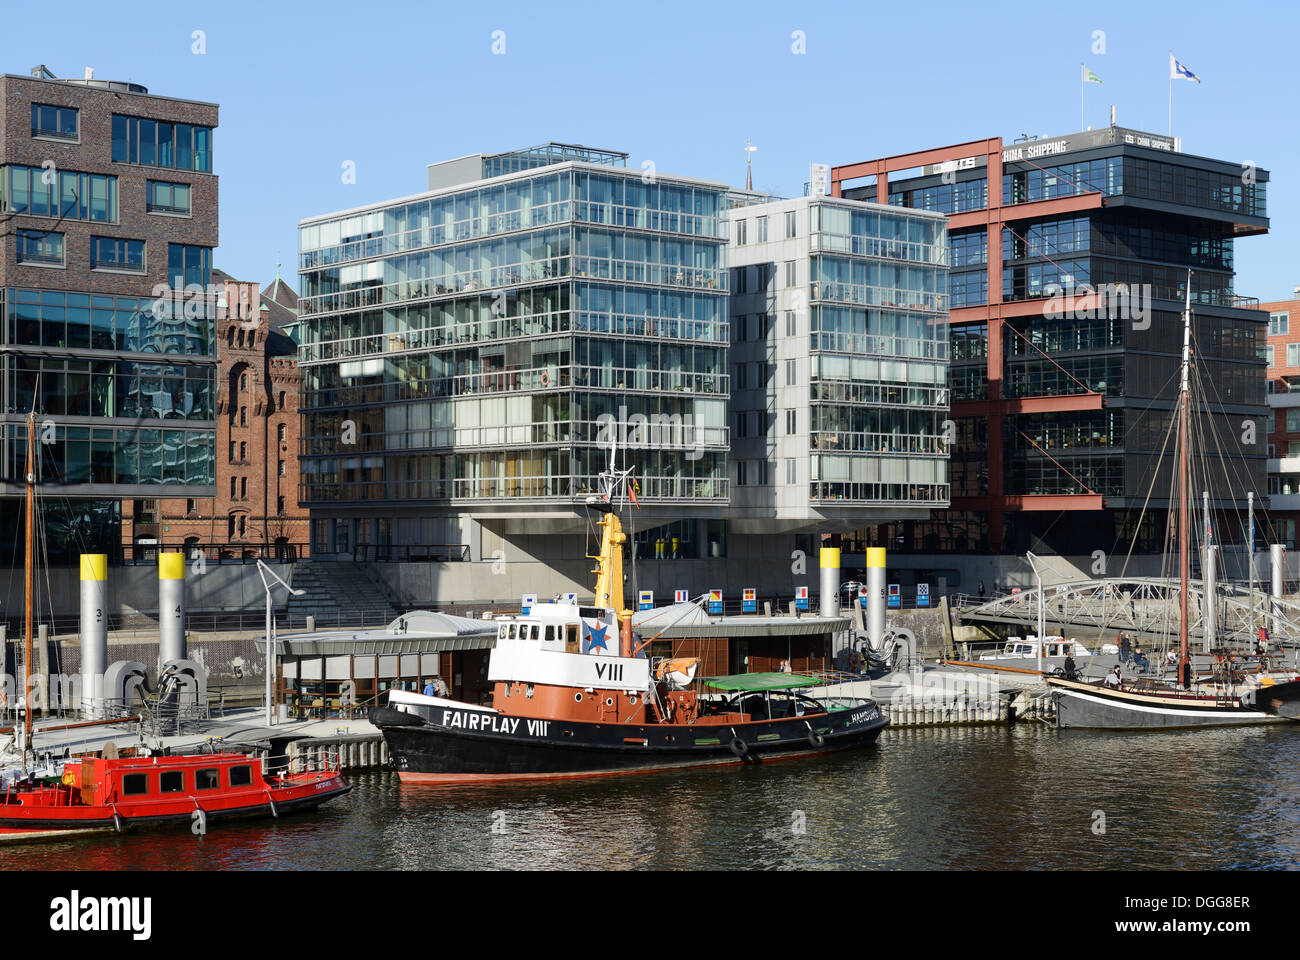 Sailing ship and tug Fairplay VIII in the historic harbor, modern residential and office buildings, Sandtorkai, Sandtorhafen - Stock Image